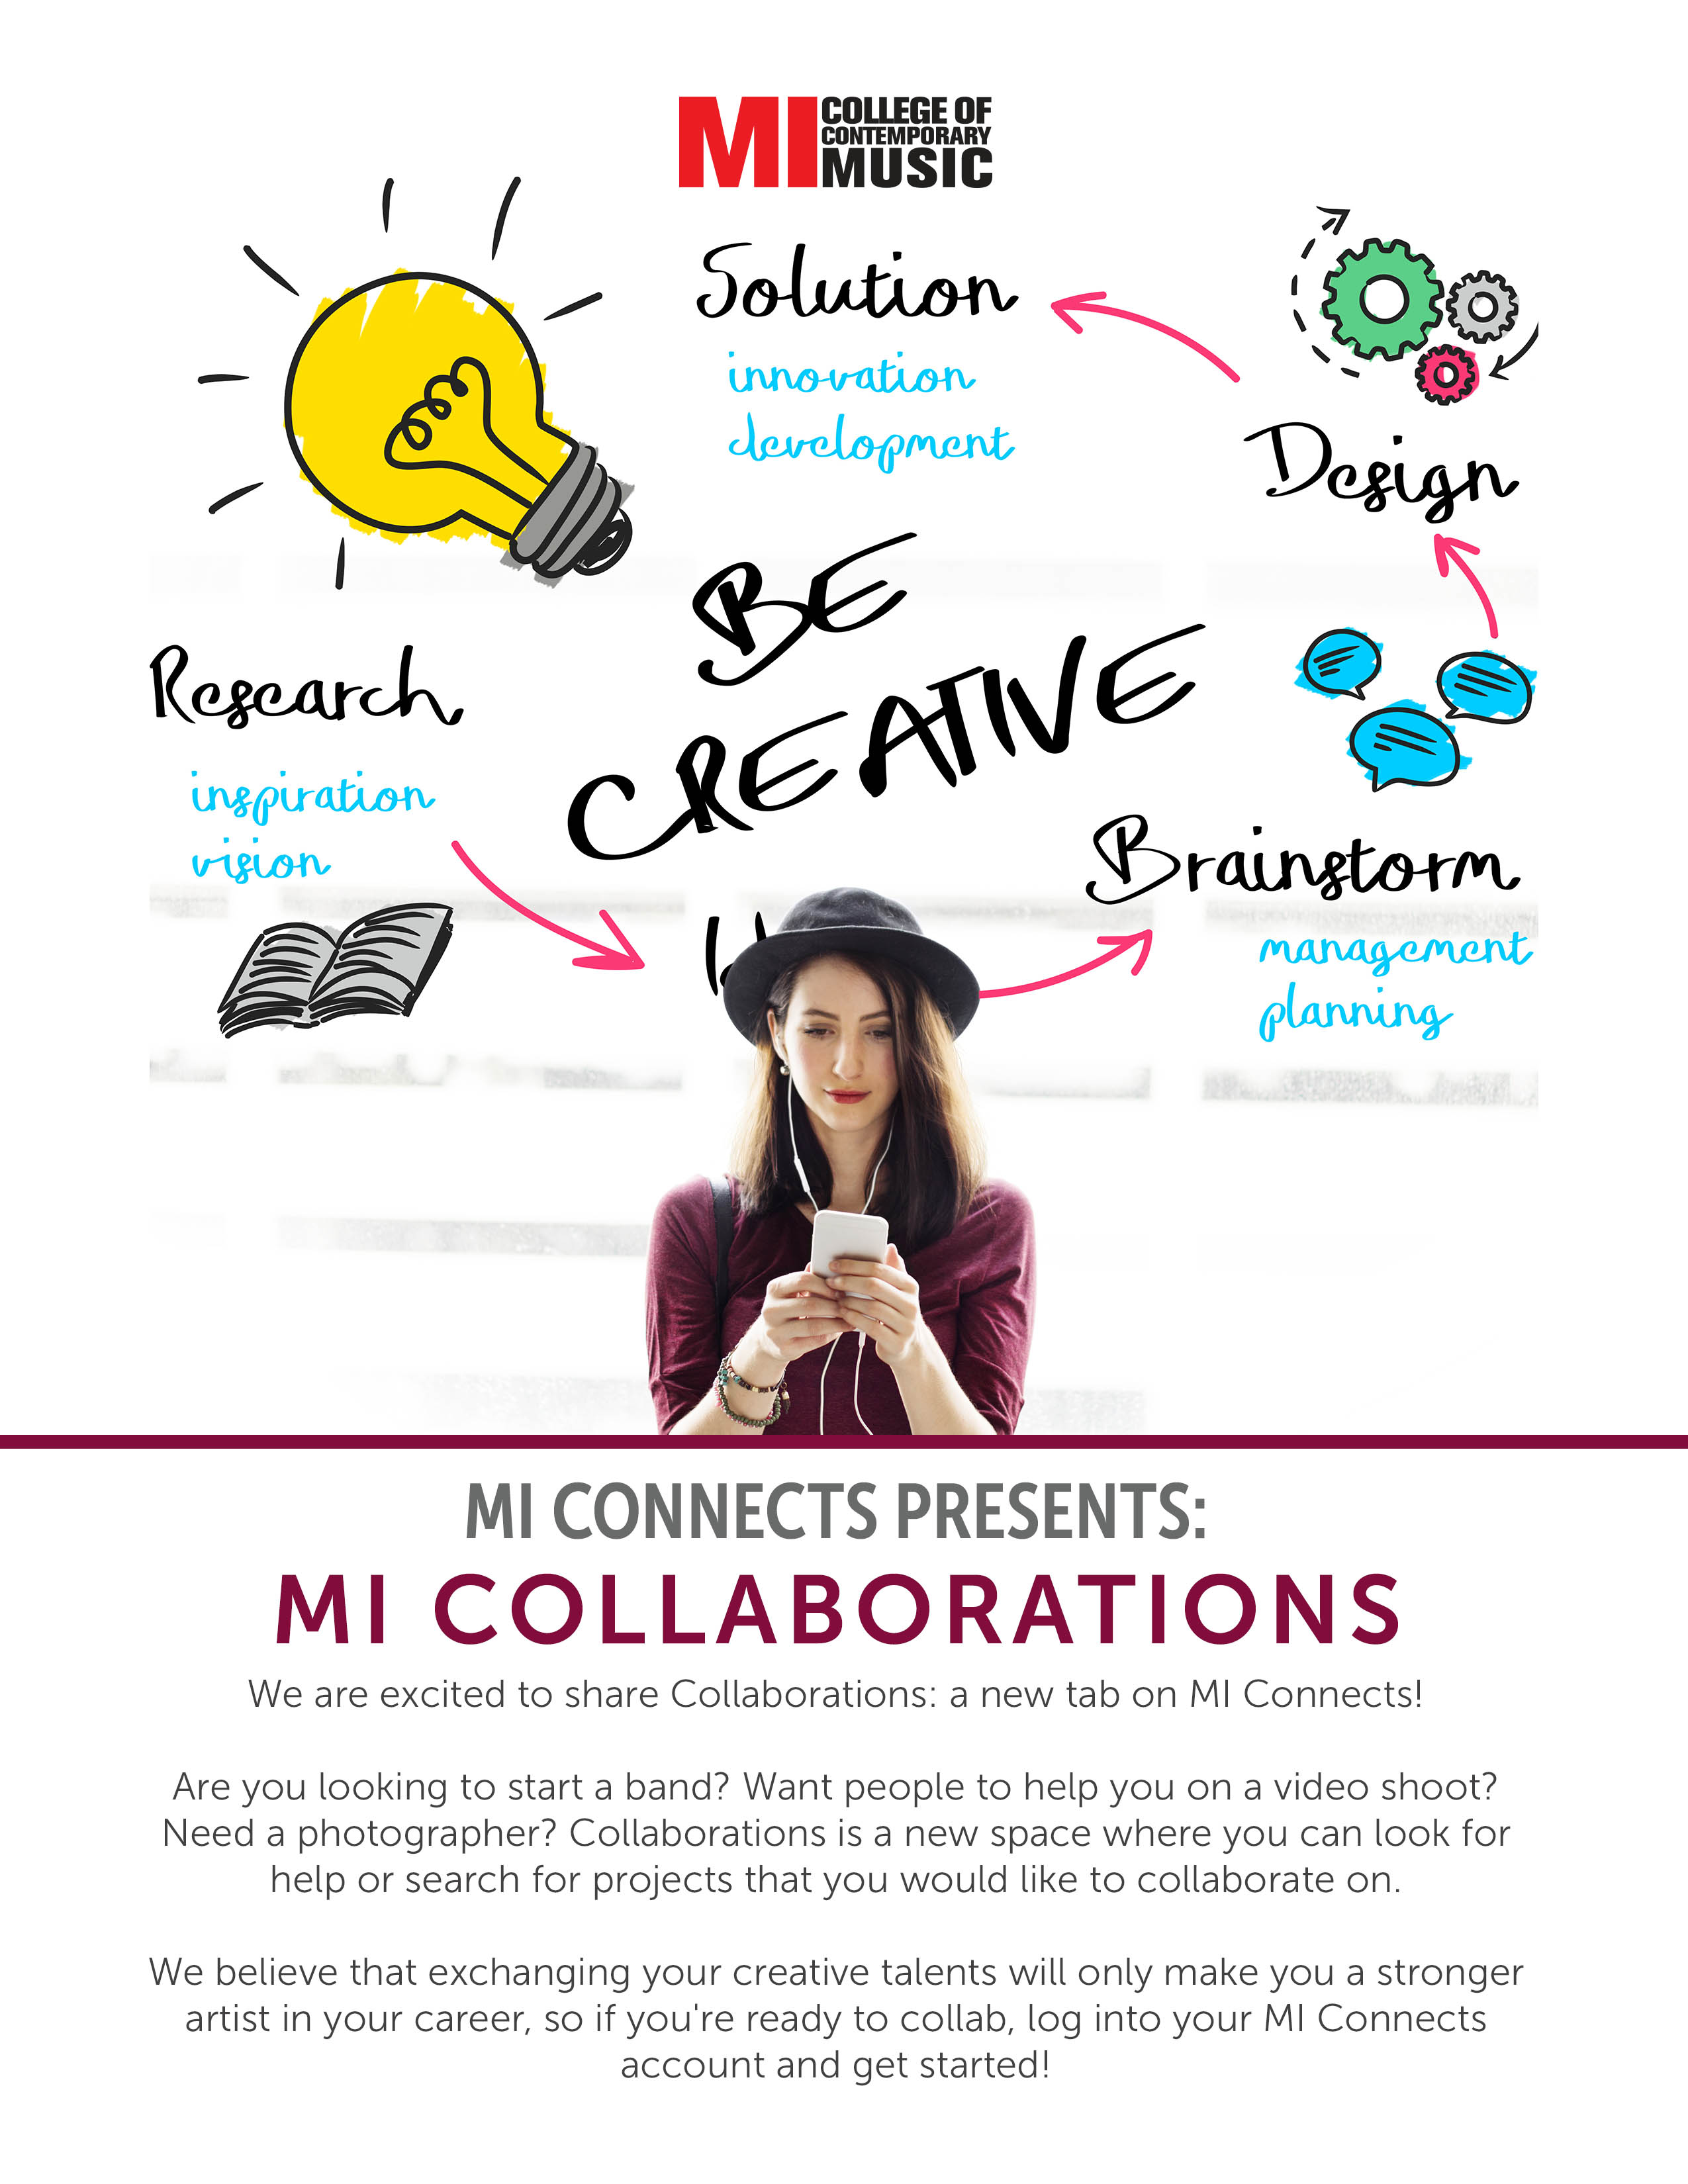 MI CONNECTS PRESENTS: MI COLLABORATIONS